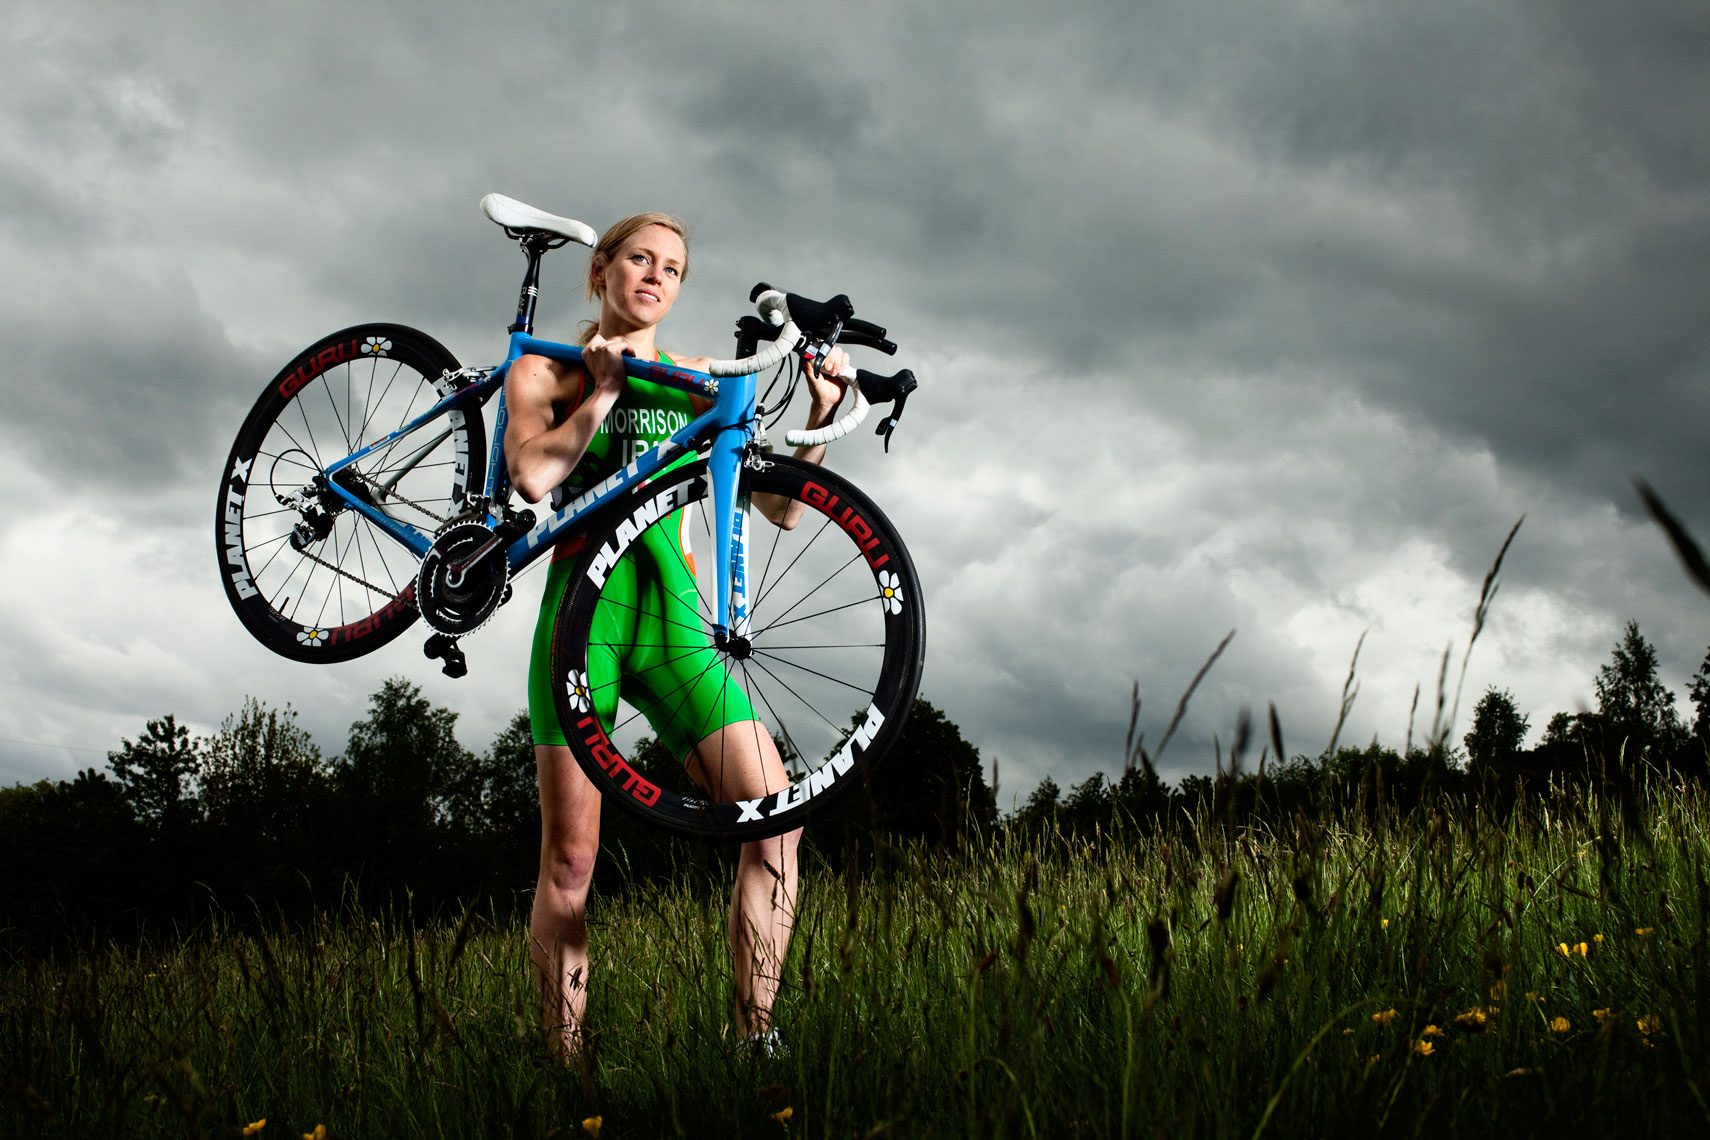 athlete portraits: aileen morrison triathlete with bike